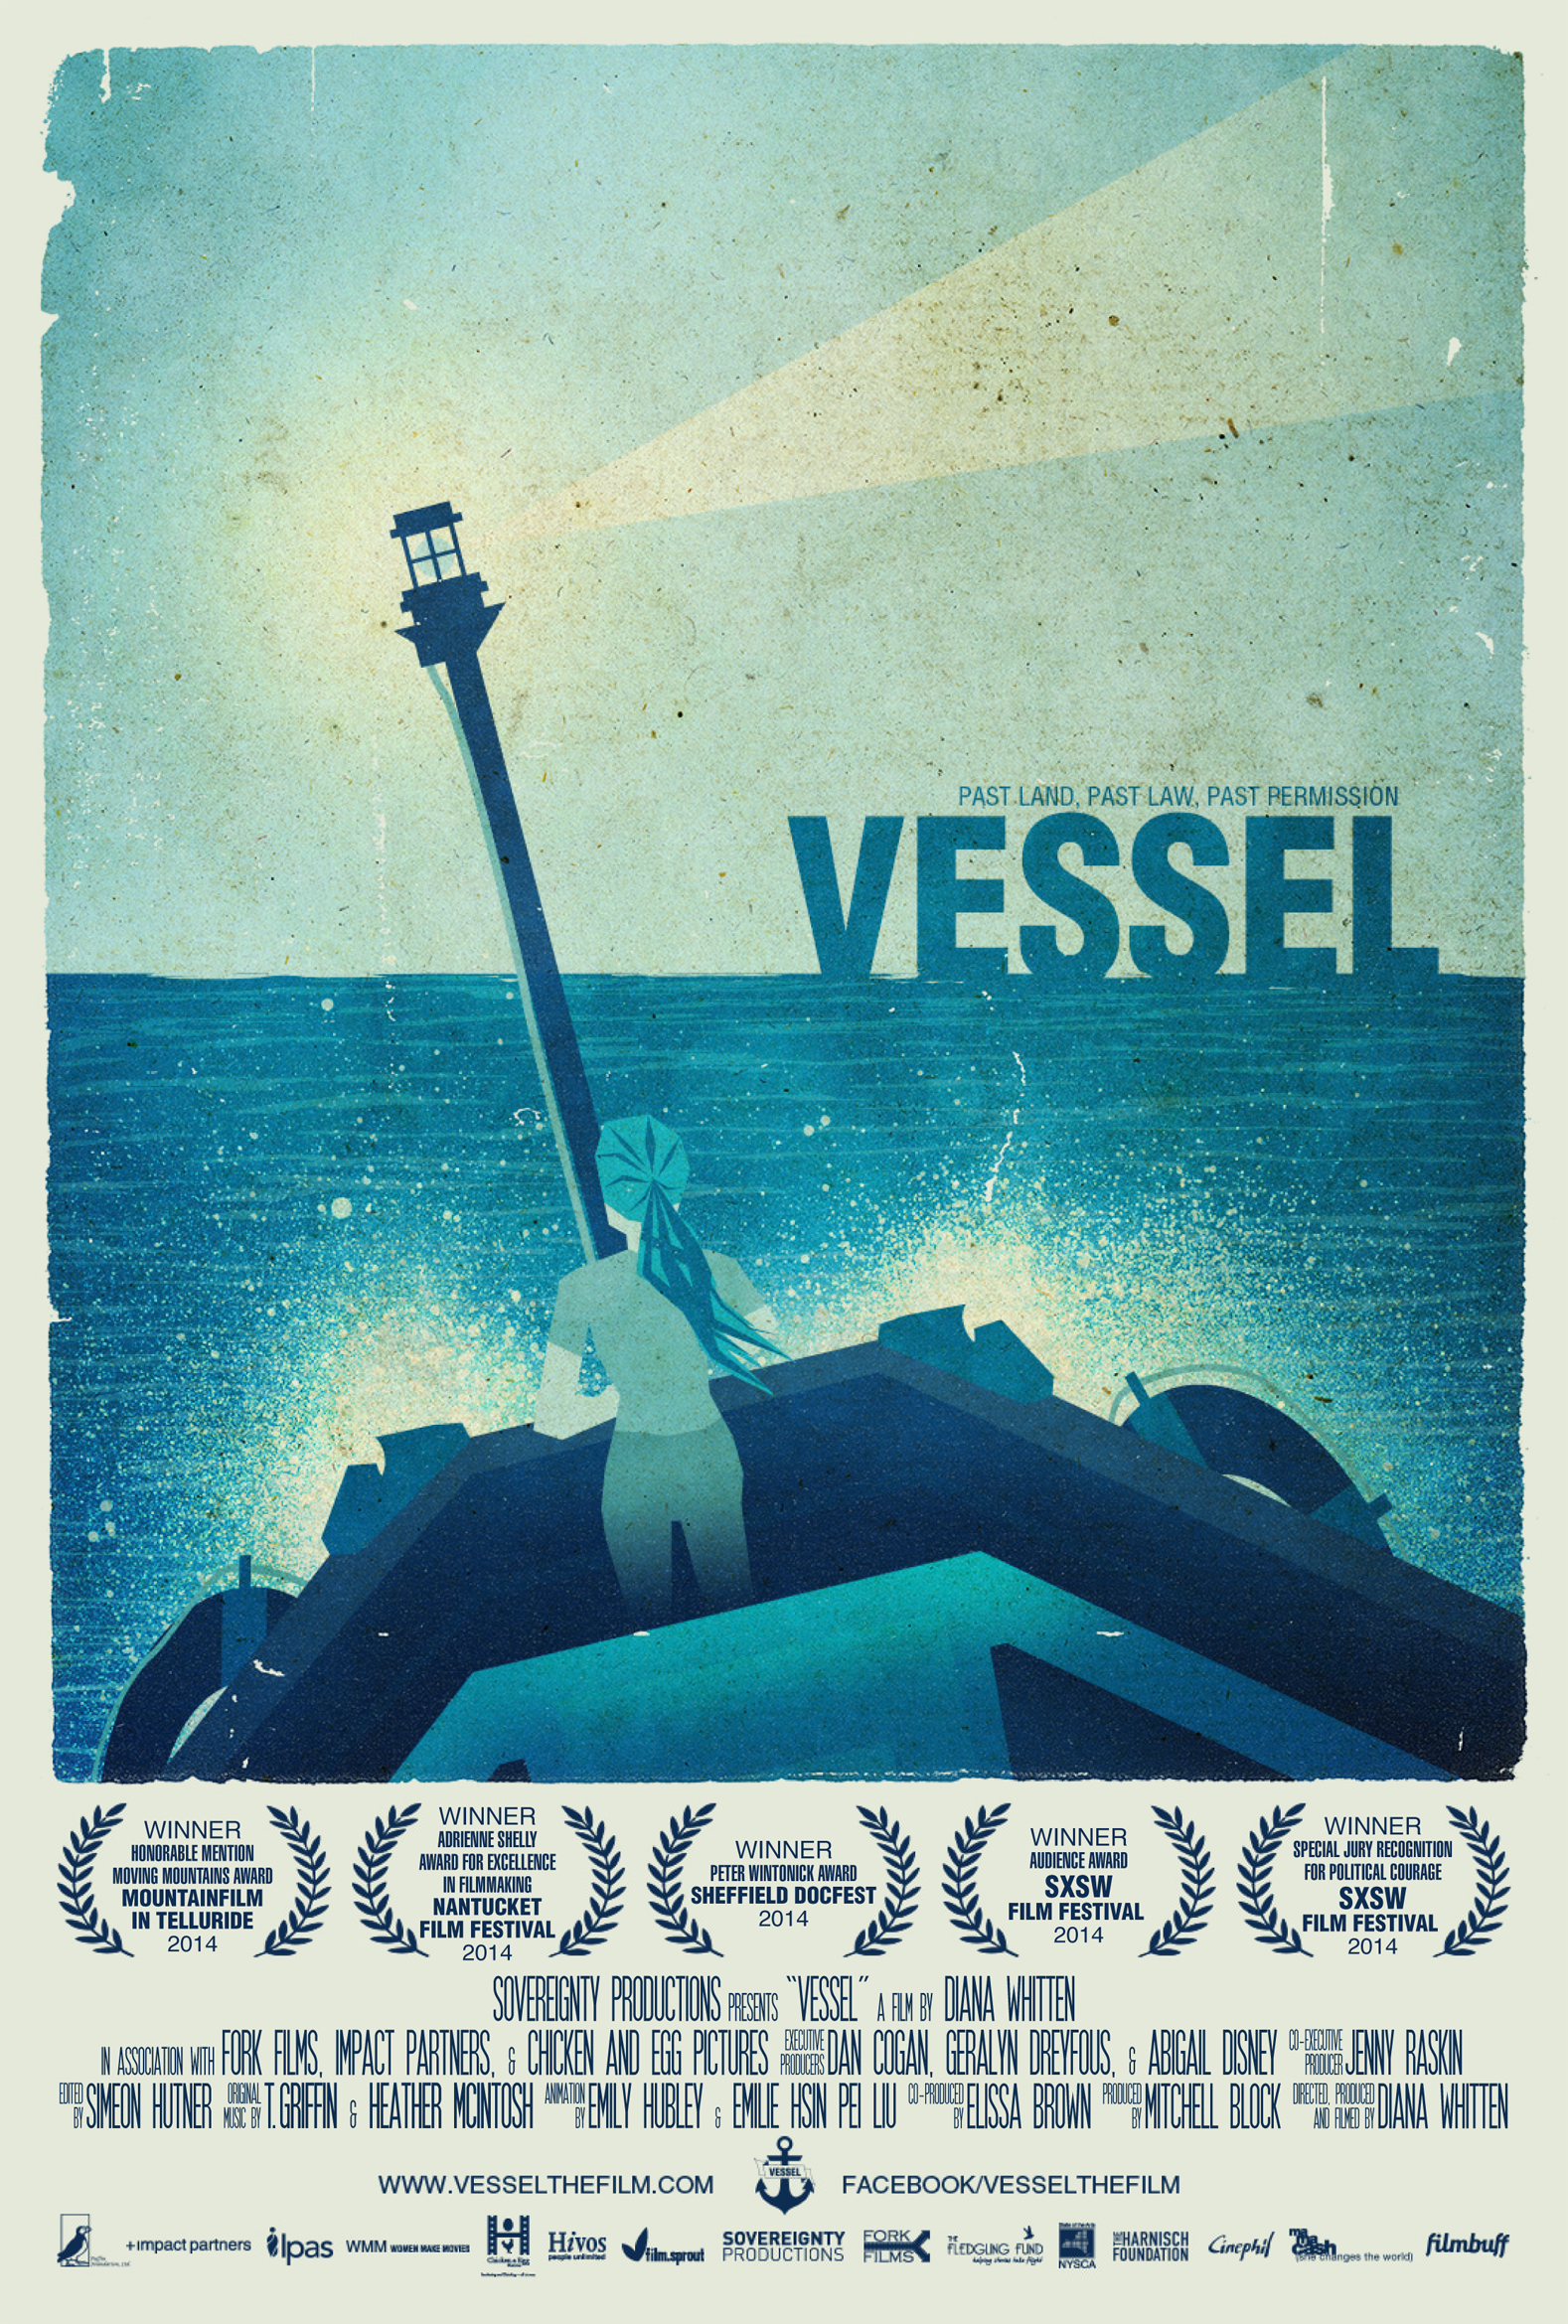 https://i0.wp.com/vesselthefilm.com/uploads/websites/456/1412792178.jpg